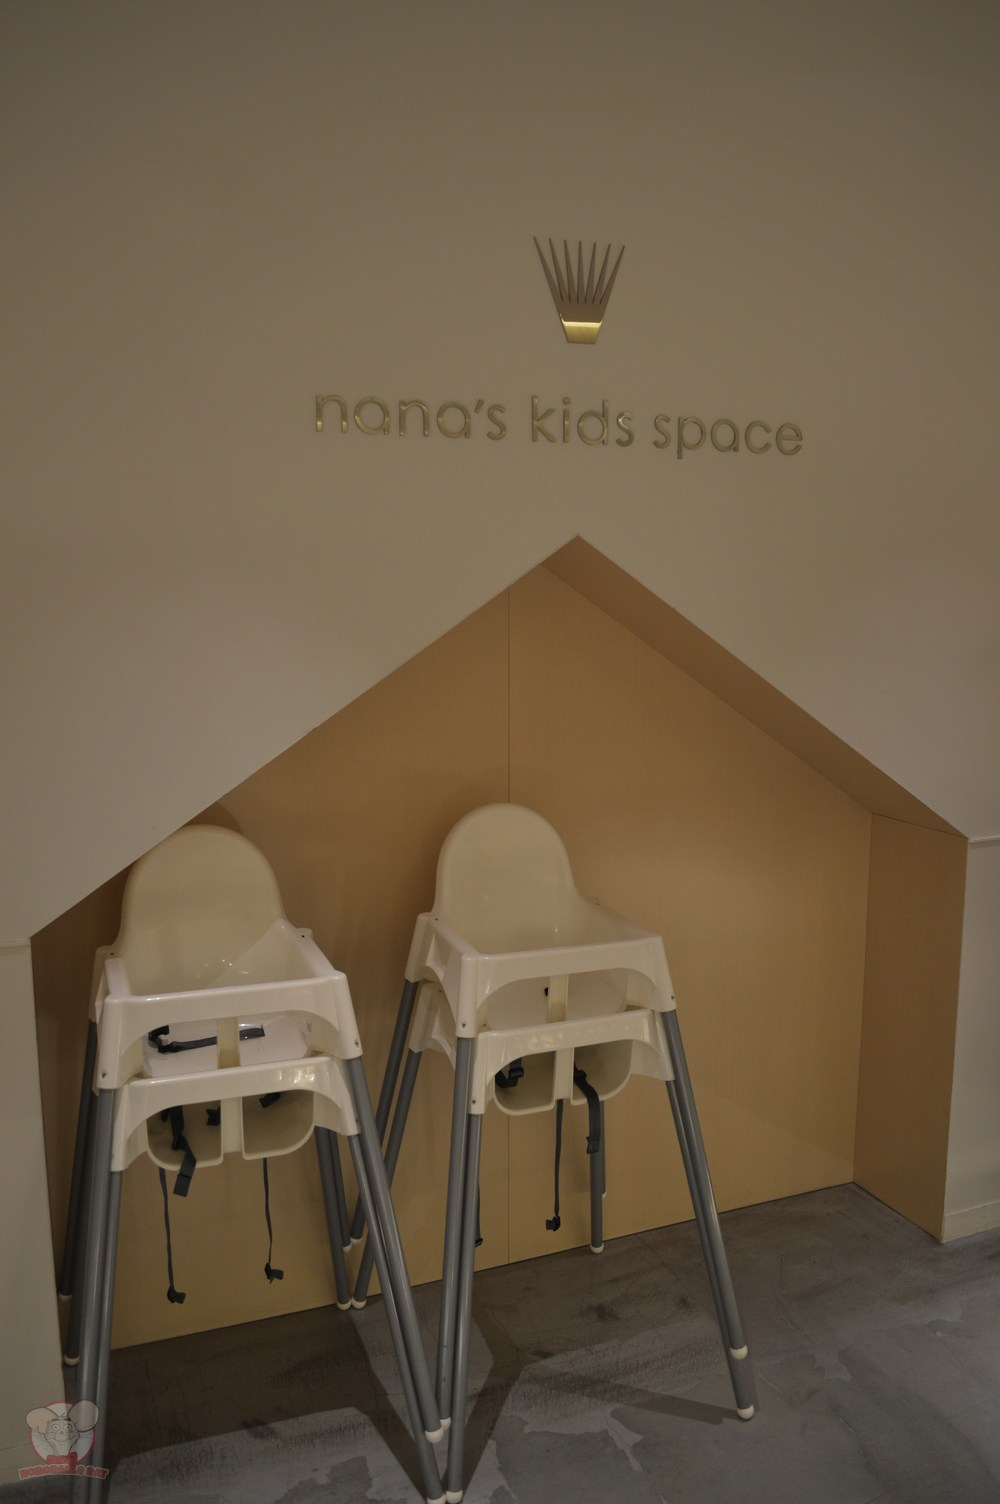 Nana's Kids Space